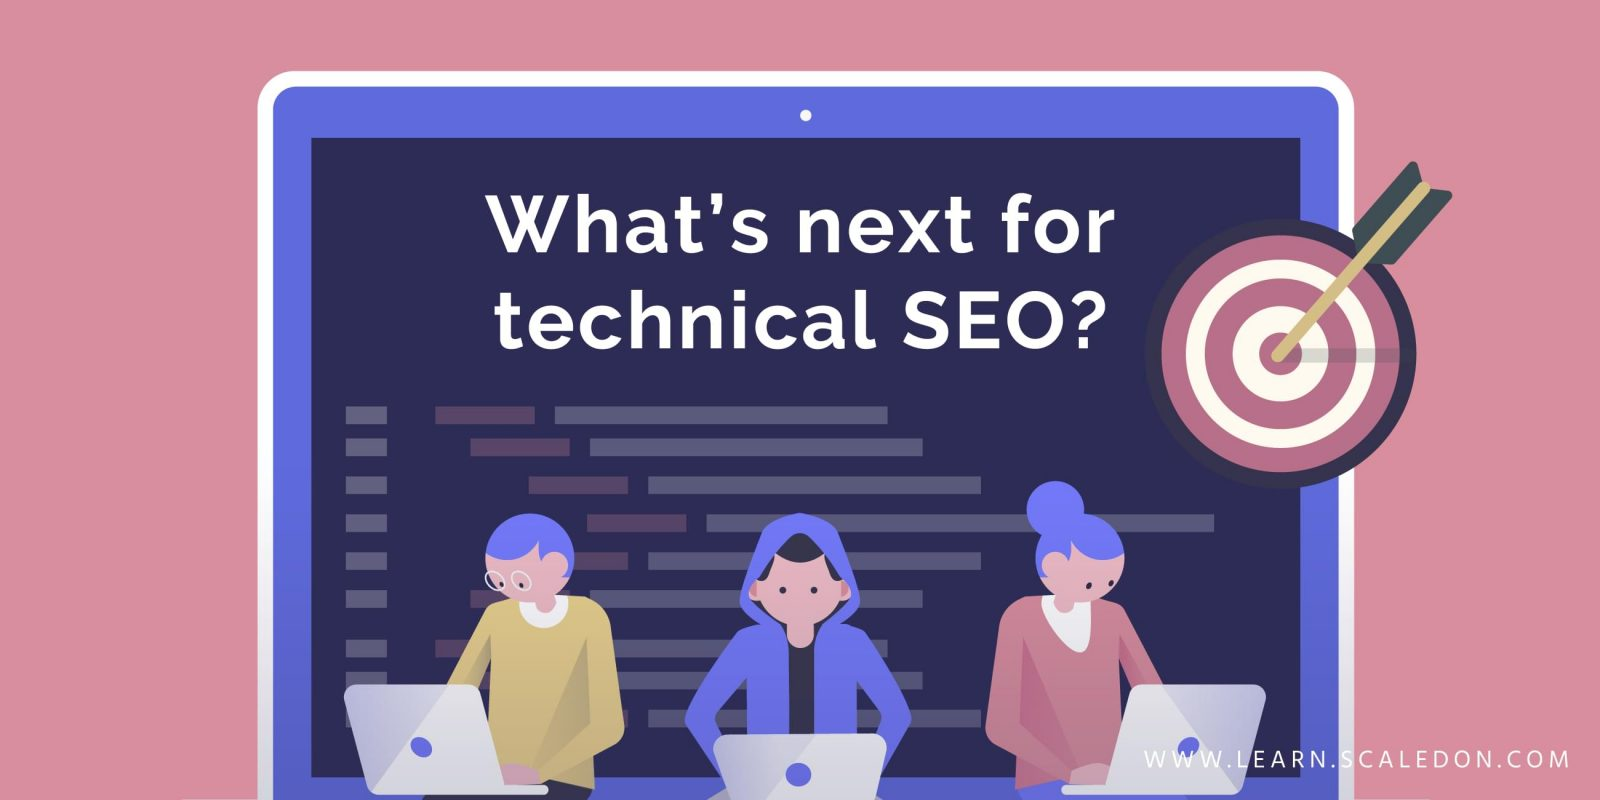 What's next for technicalSEO